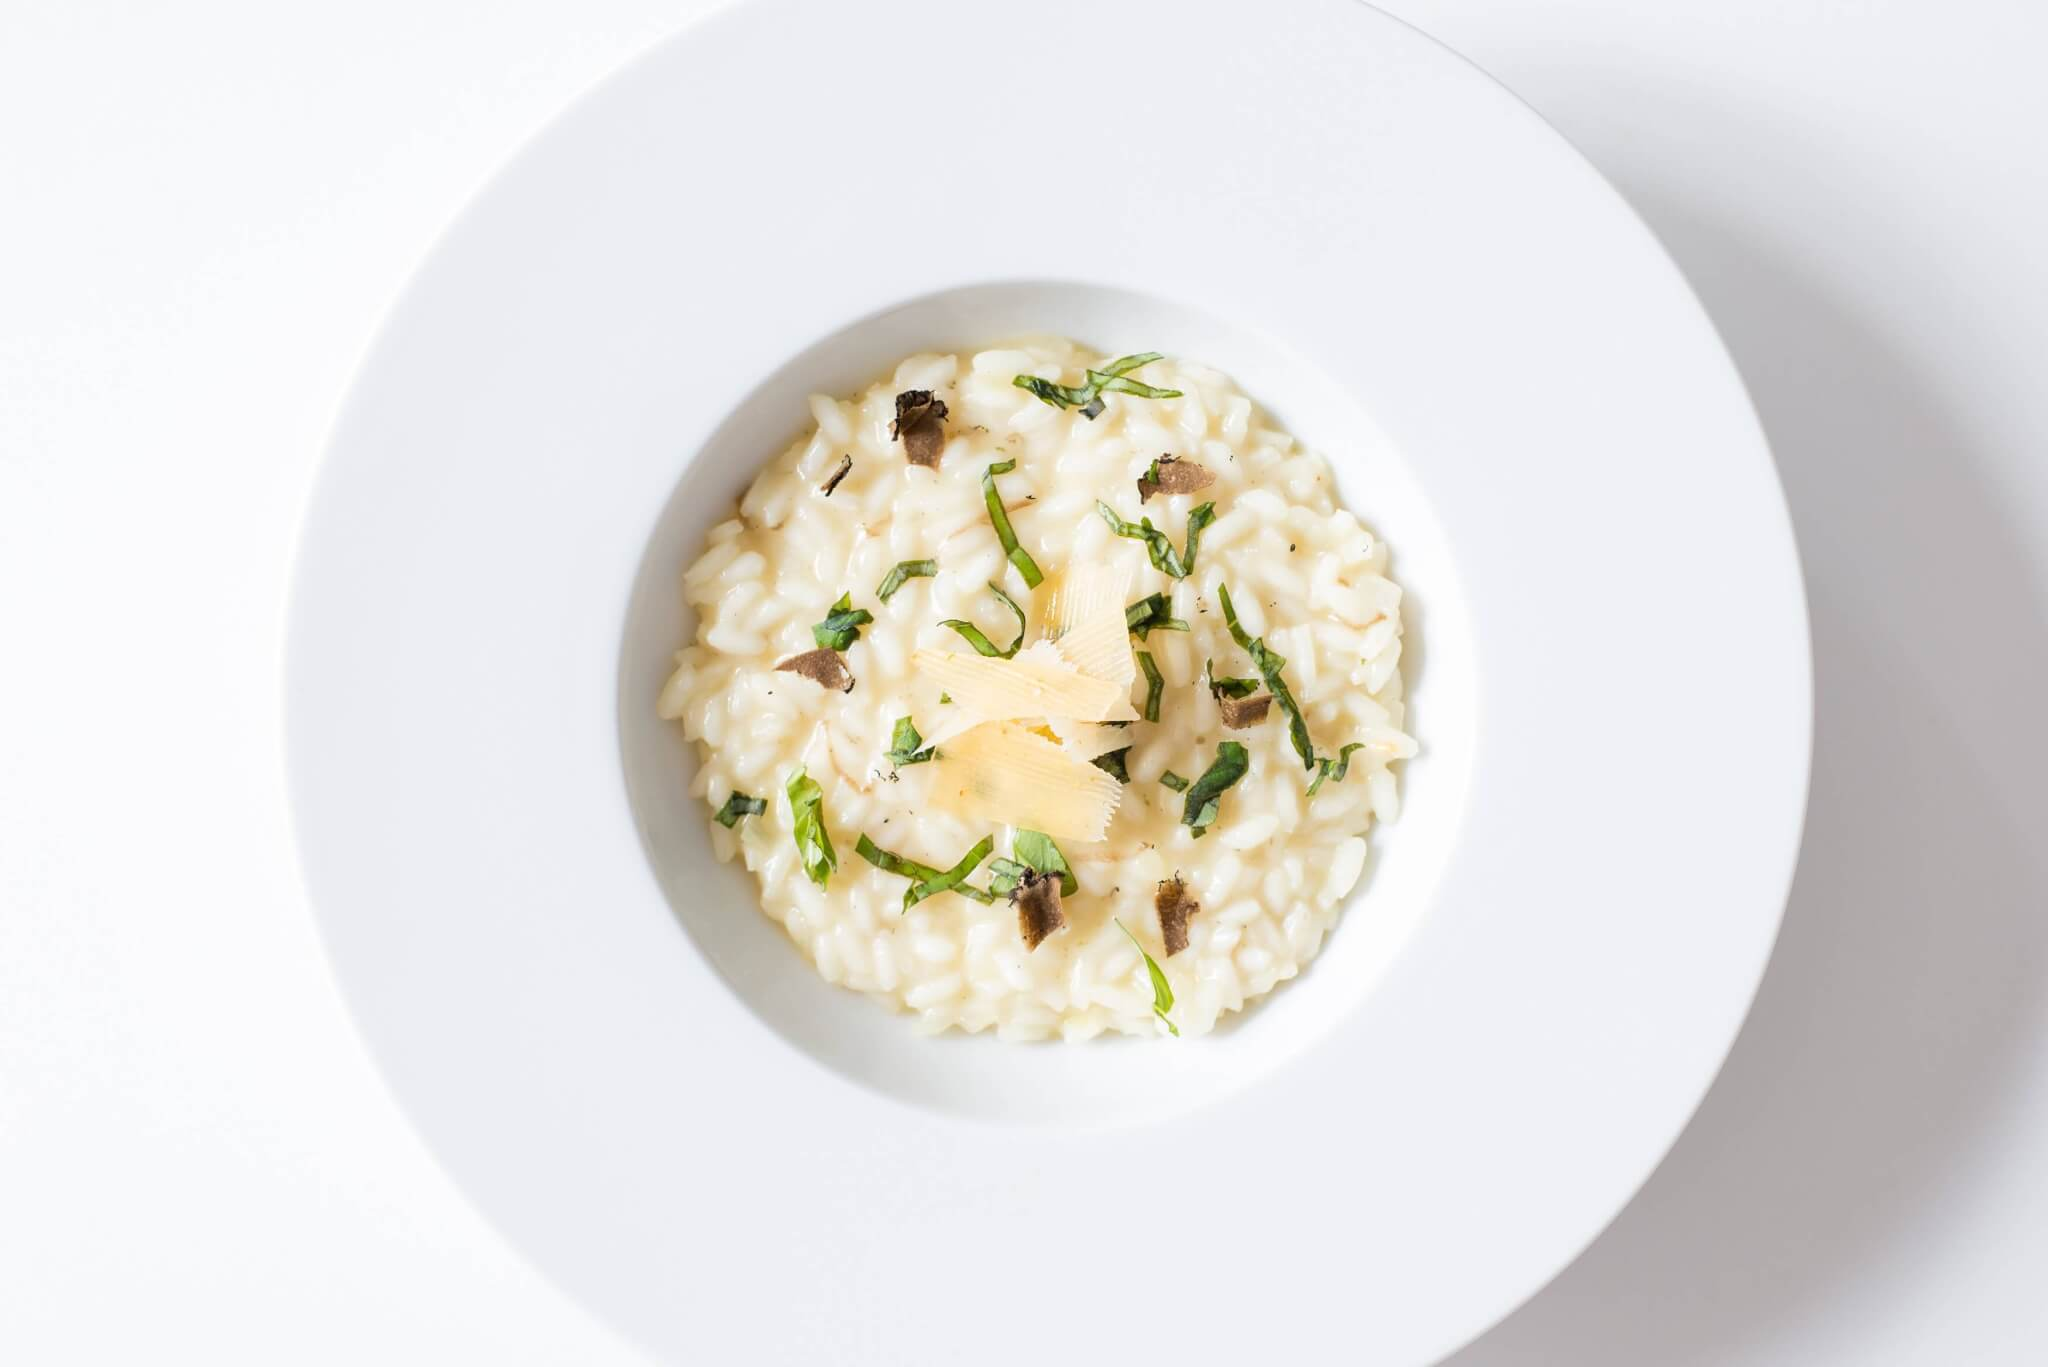 Mortadella Head Somerville Boston risotto